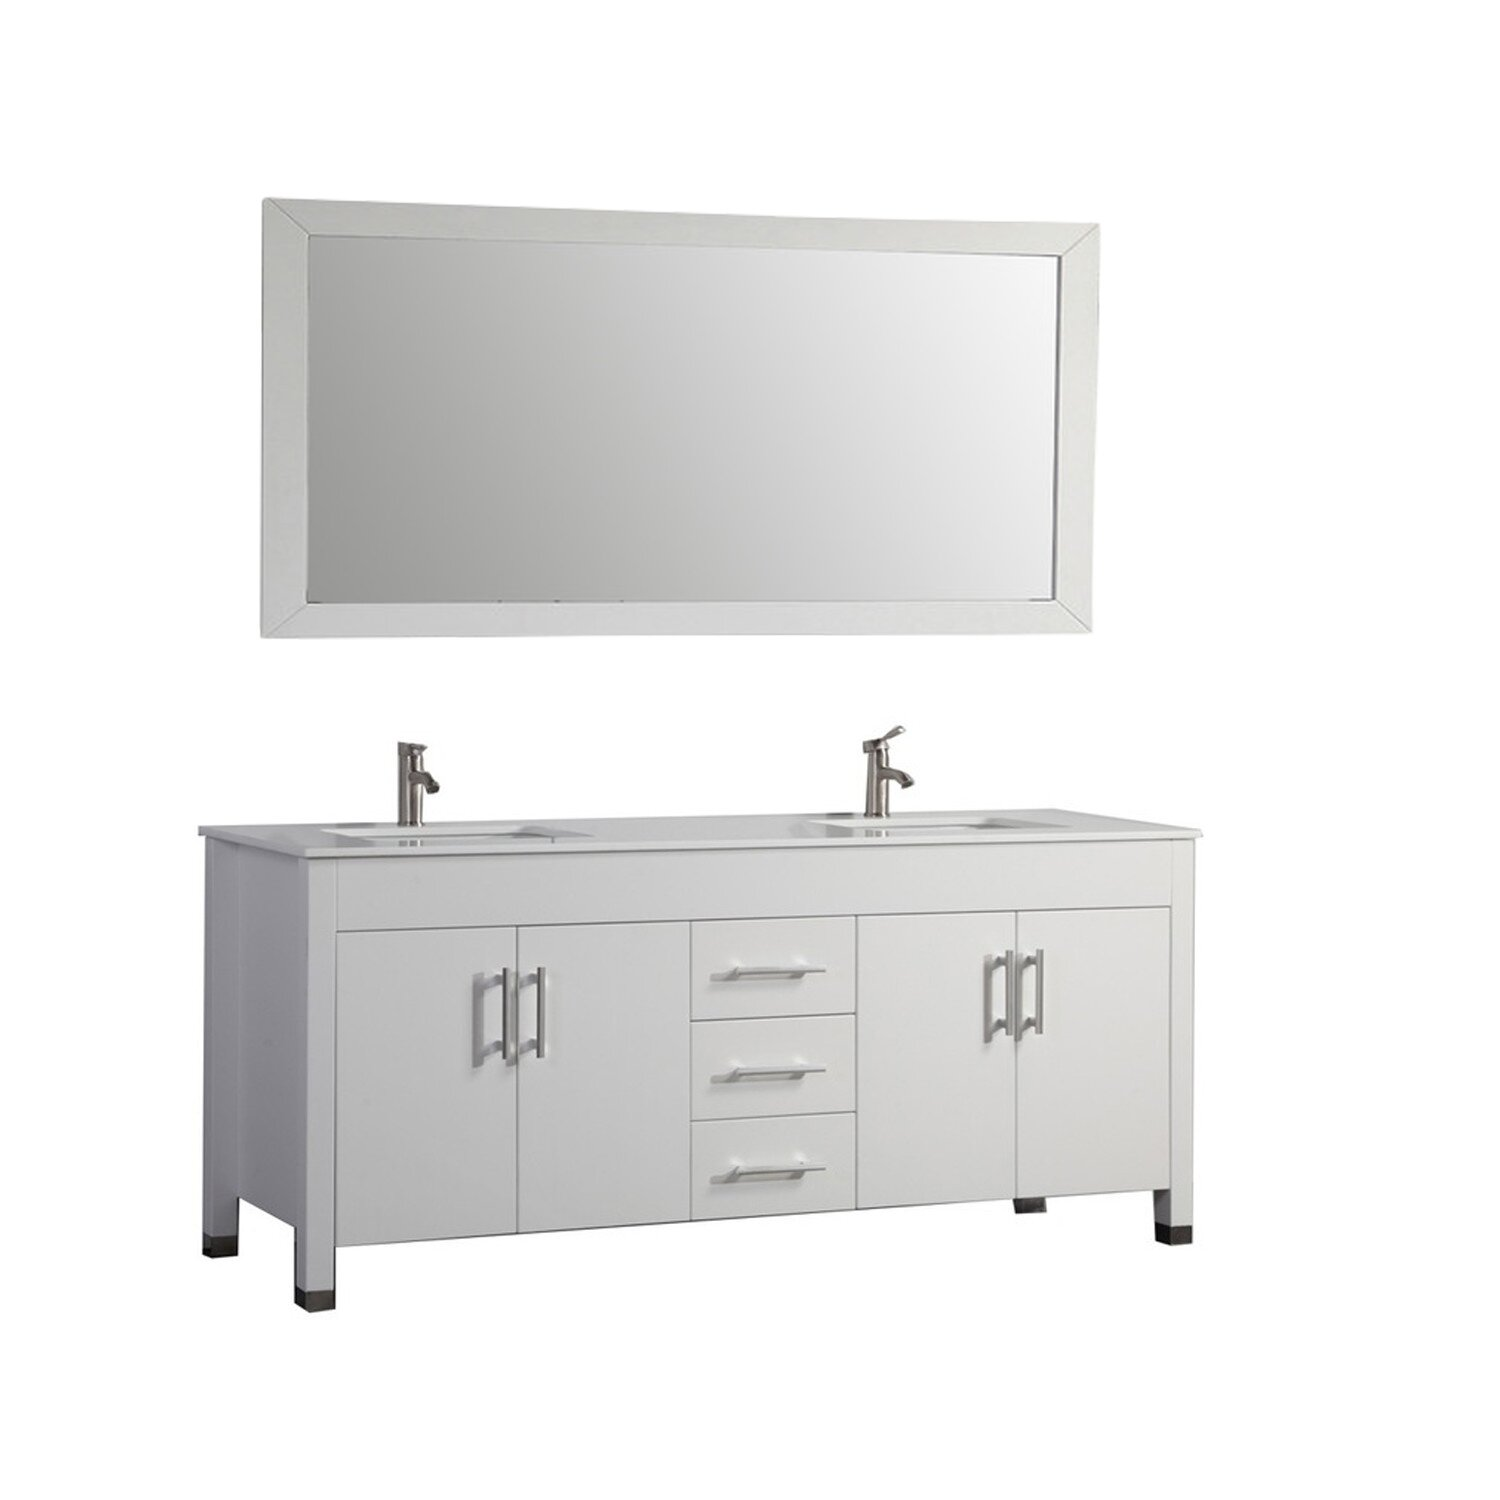 Mtdvanities Monaco 63 Double Sink Bathroom Vanity Set With Mirror Reviews